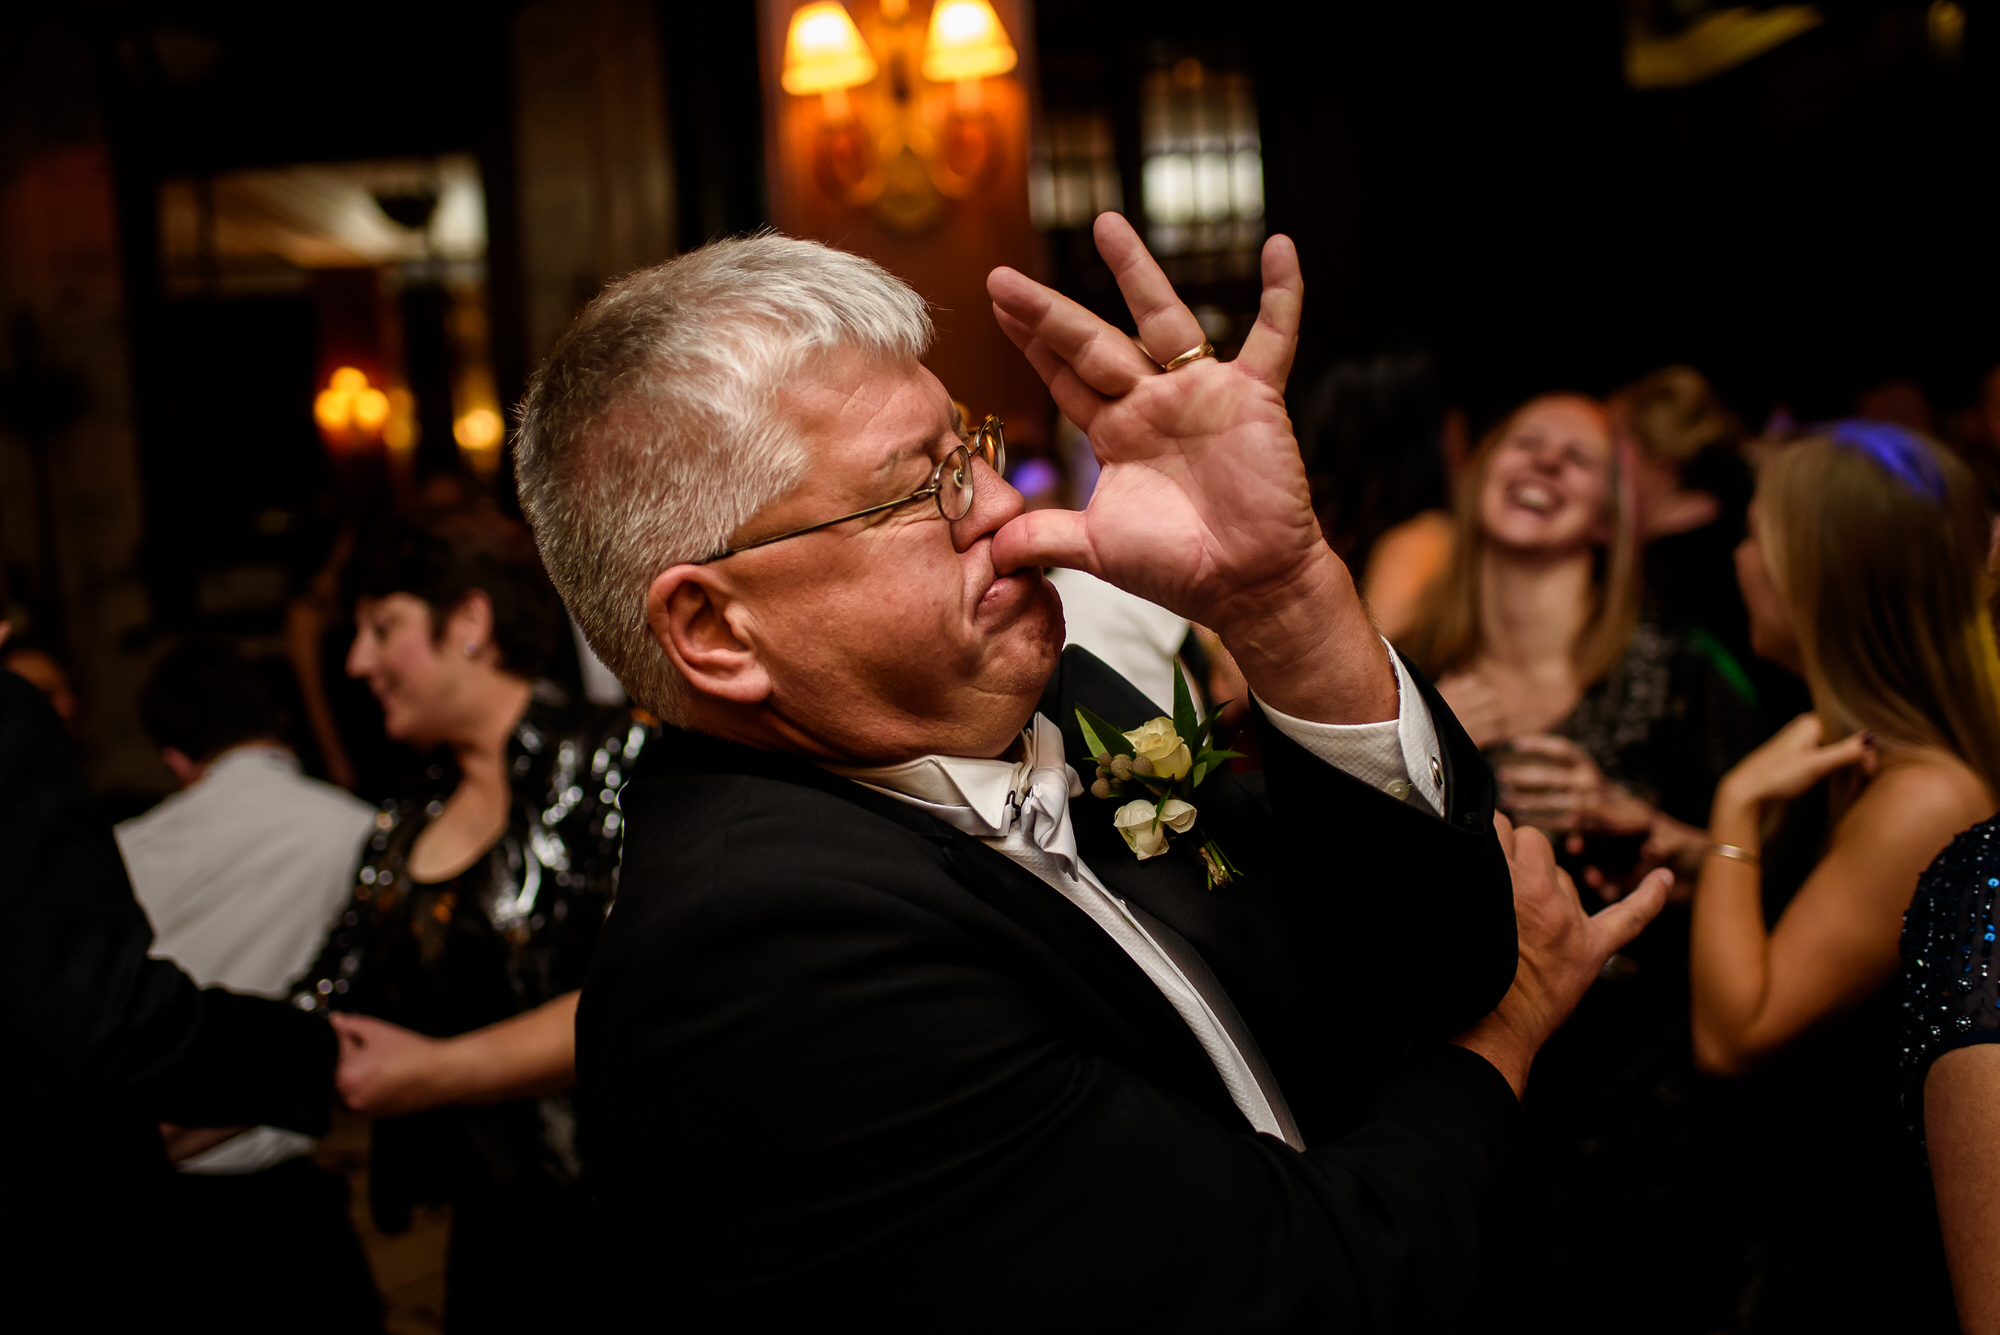 funny-photo-of-guest-trumpeting-with-hand-worlds-best-wedding-photos-tyler-wirken-kansas-city-wedding-photographers